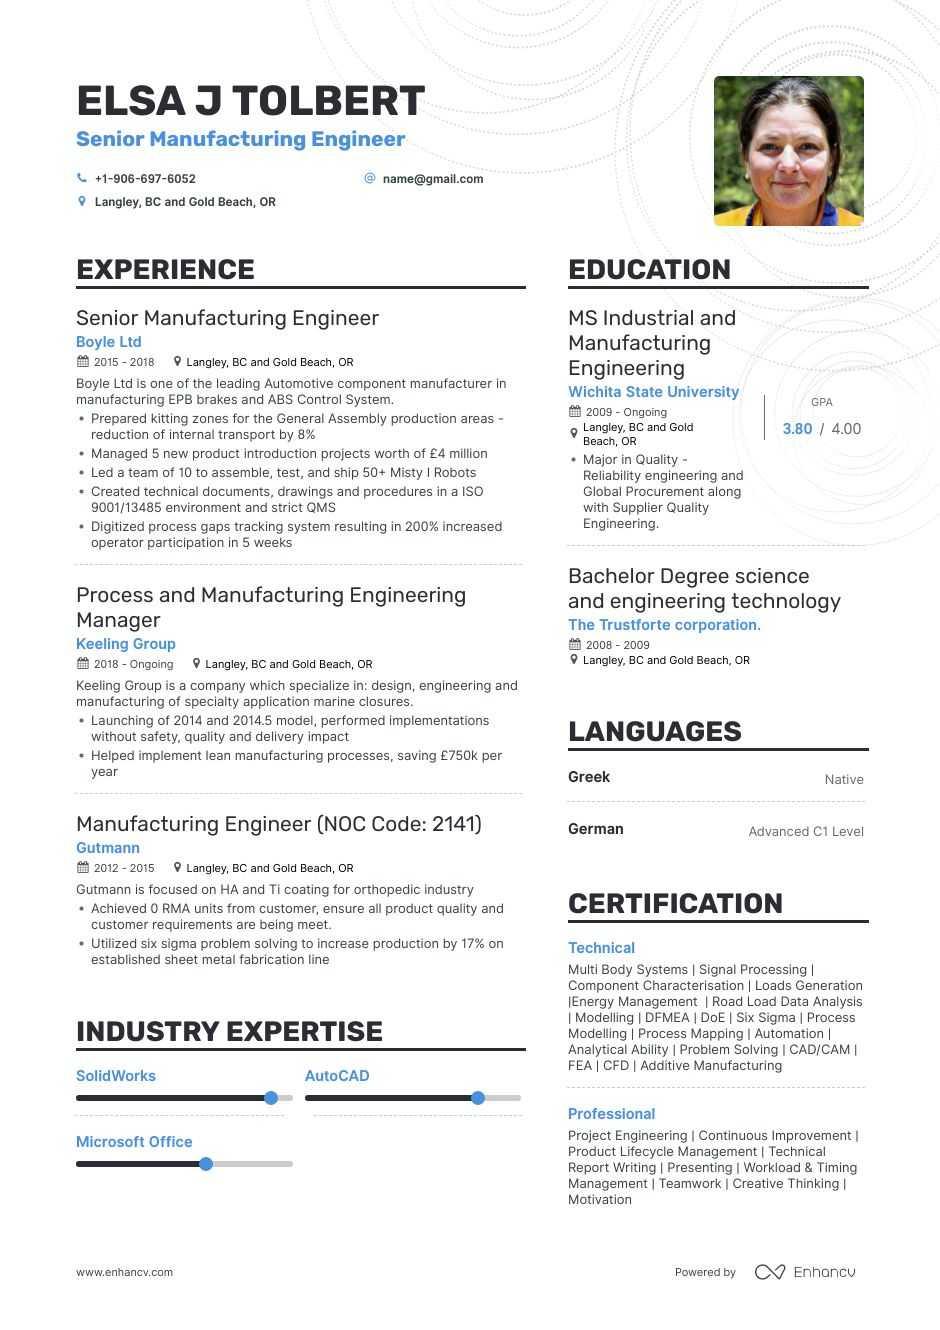 manufacturing engineer resume example for enhancv best mba examples bottle server theory Resume Manufacturing Engineer Resume